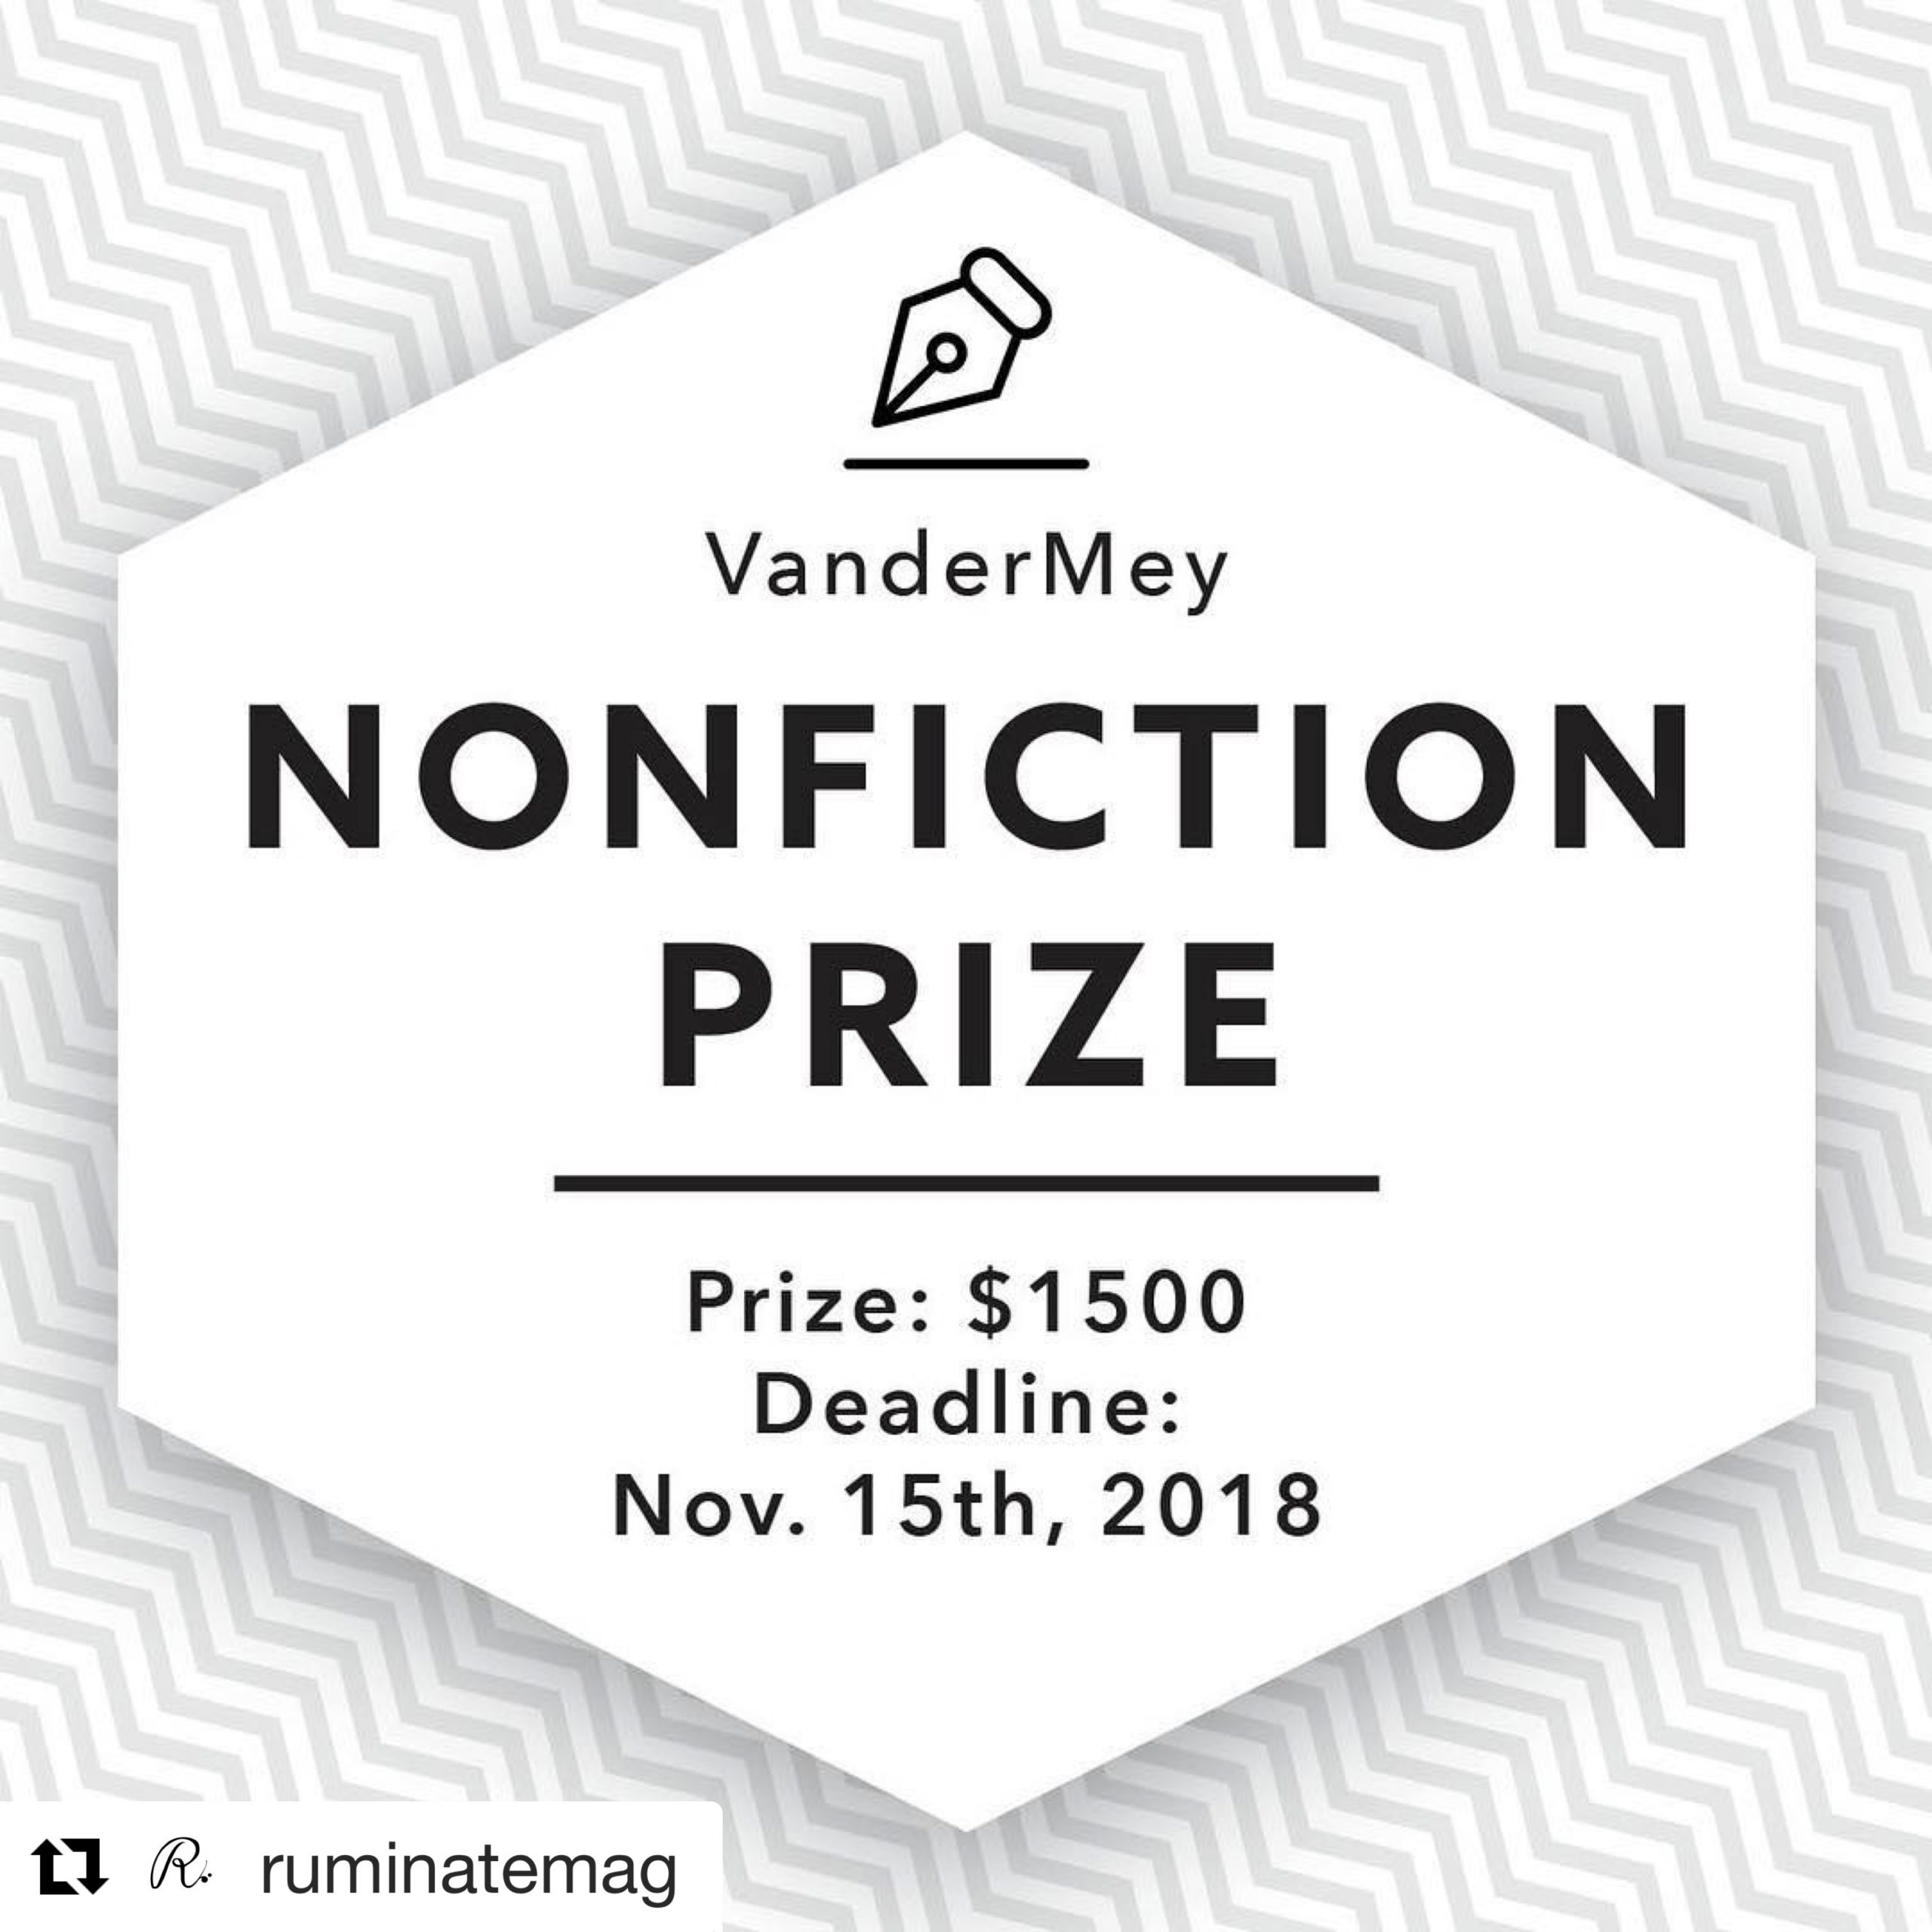 VanderMey Nonfiction Prize